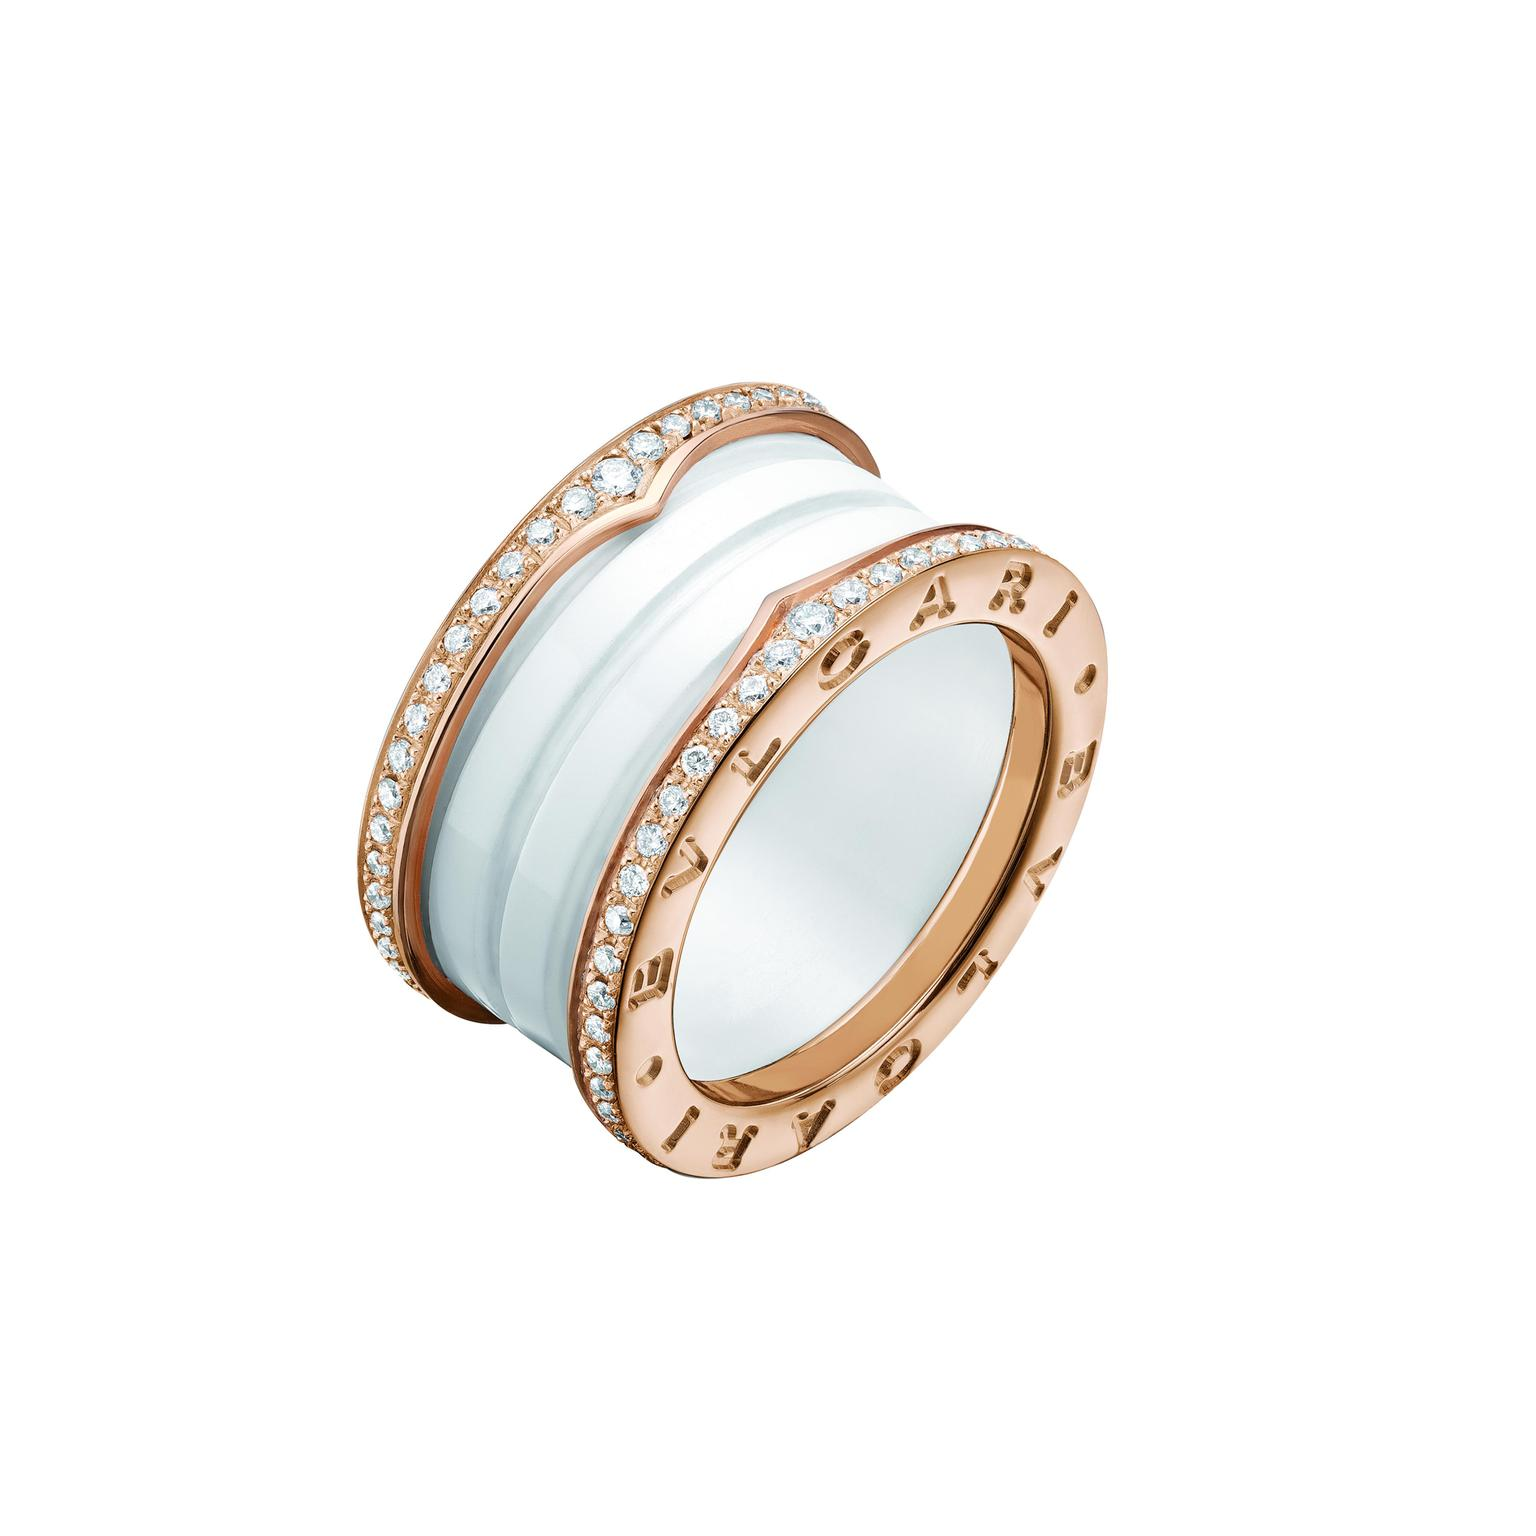 Bulgari rose gold and diamond ring